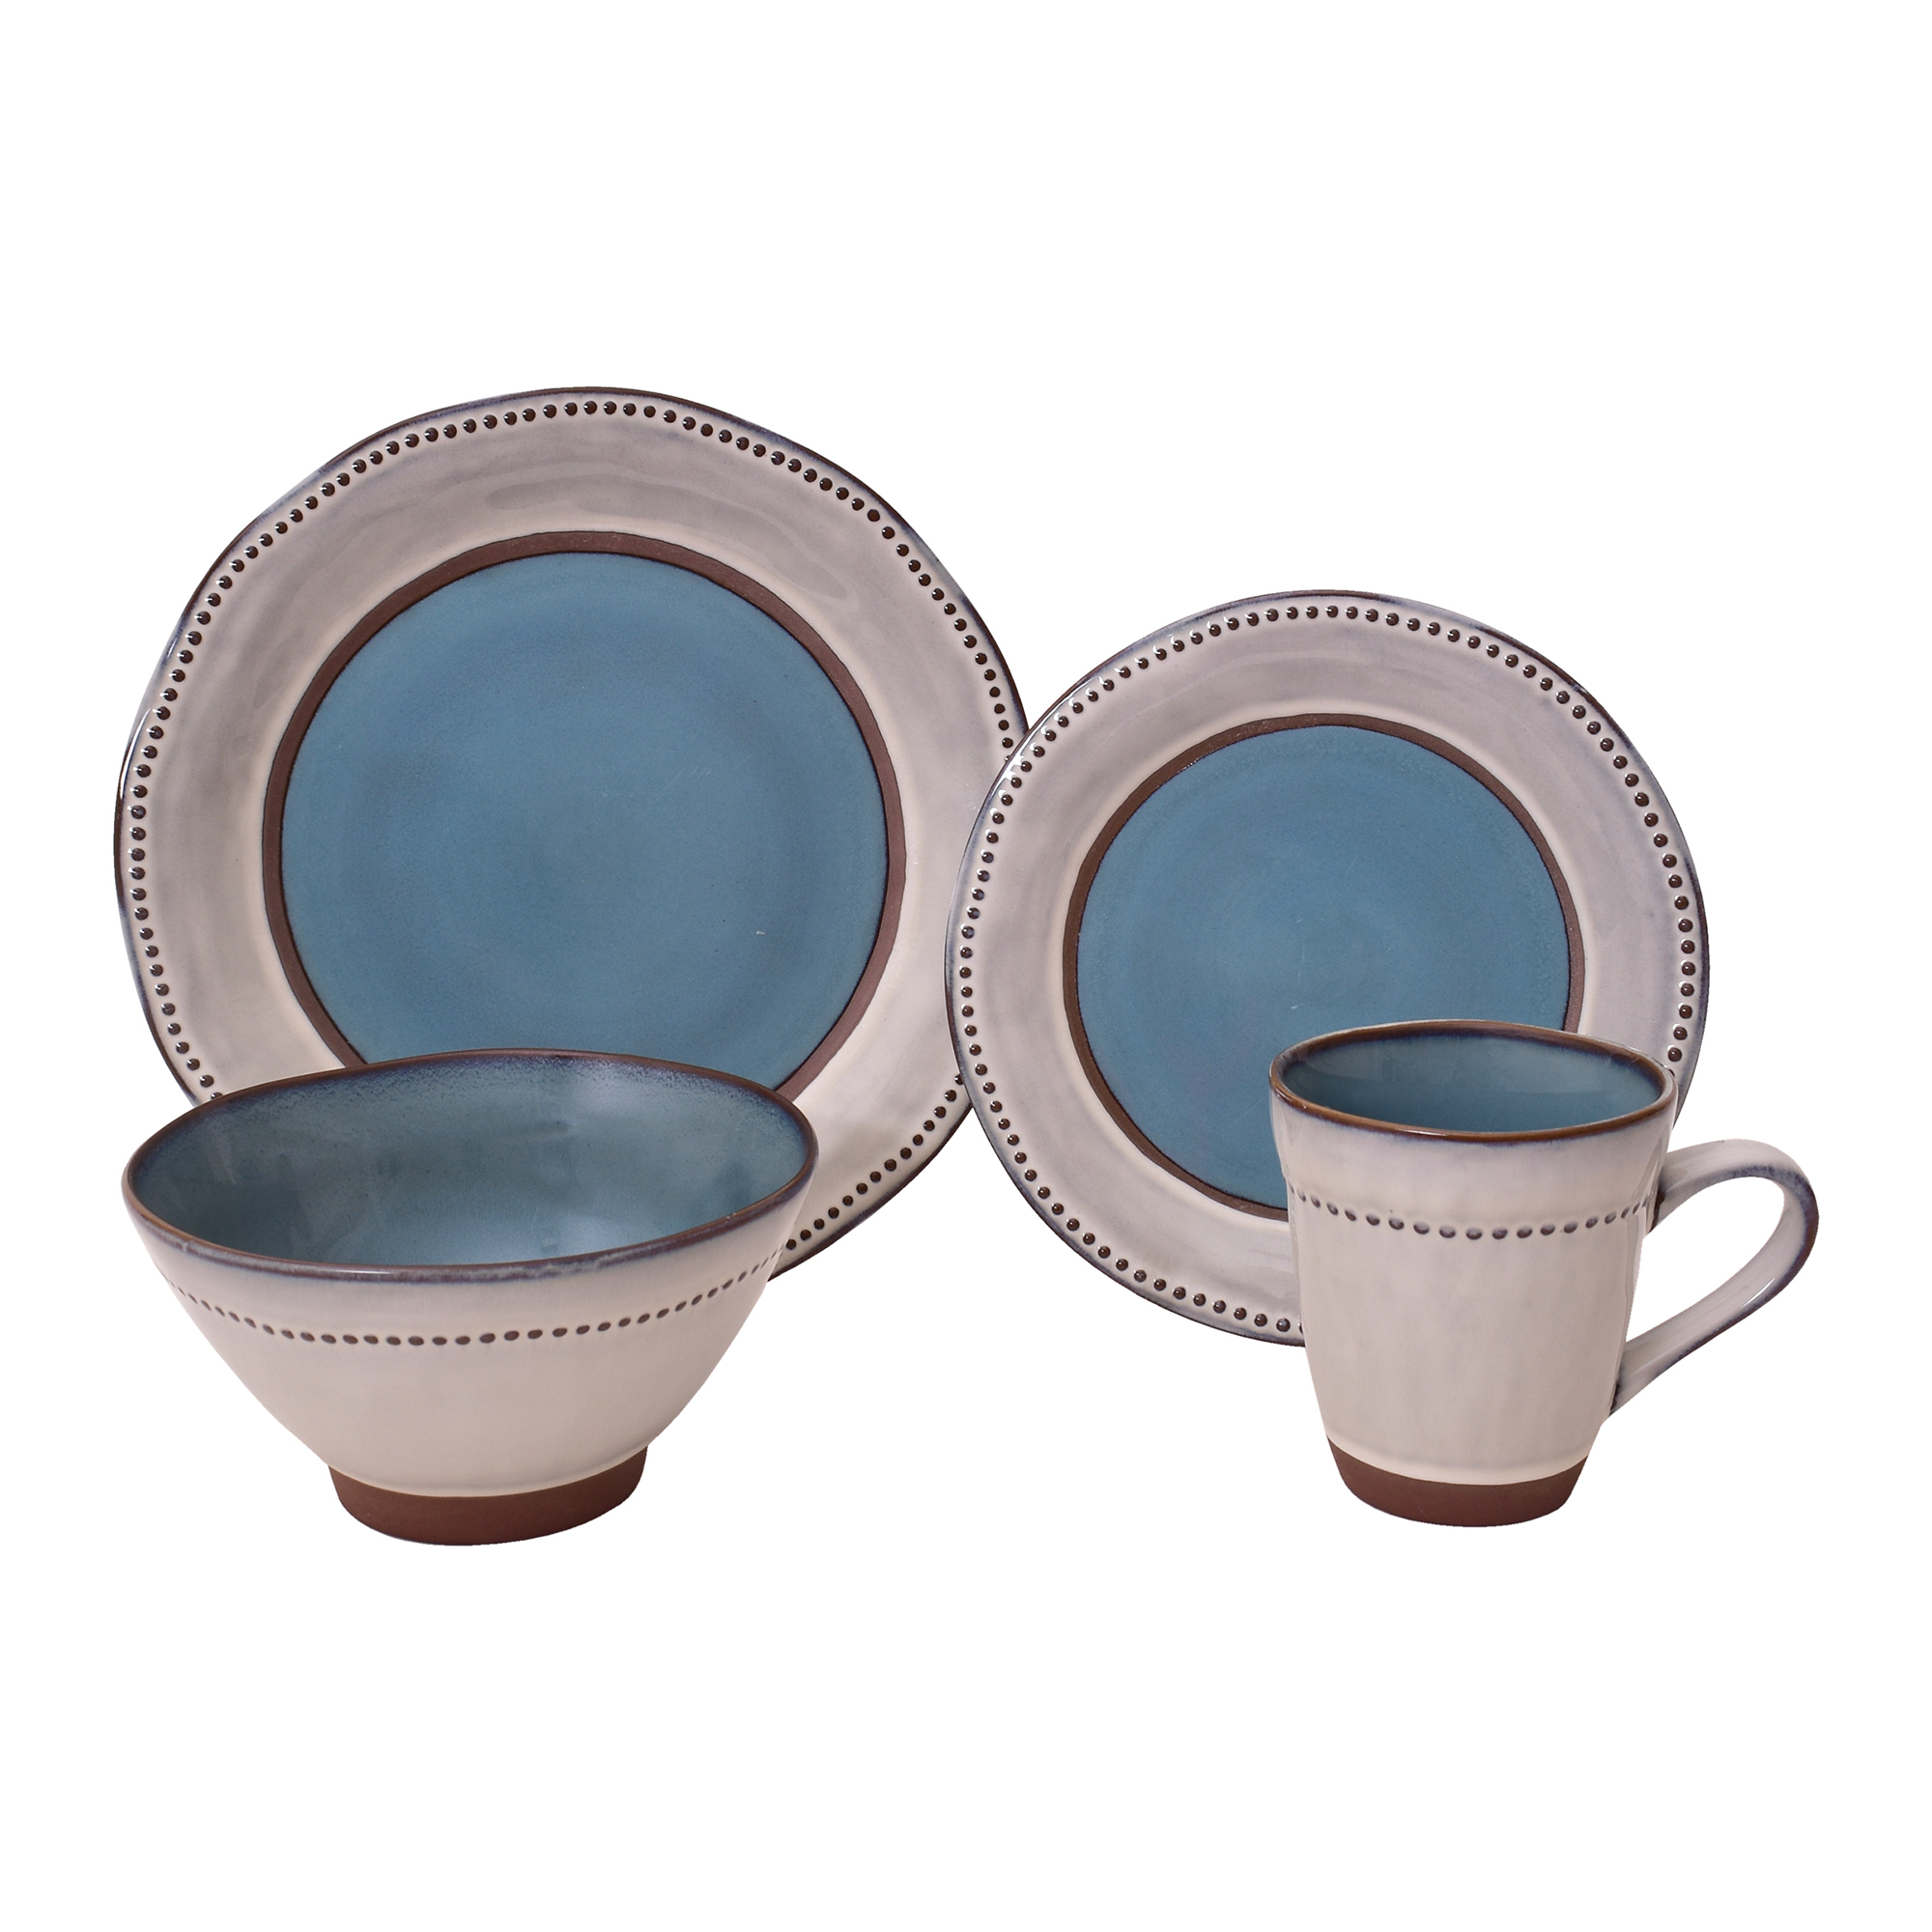 16 Ceramic Dinnerware Sets That Look Way More Expensive than TheyAre forecasting